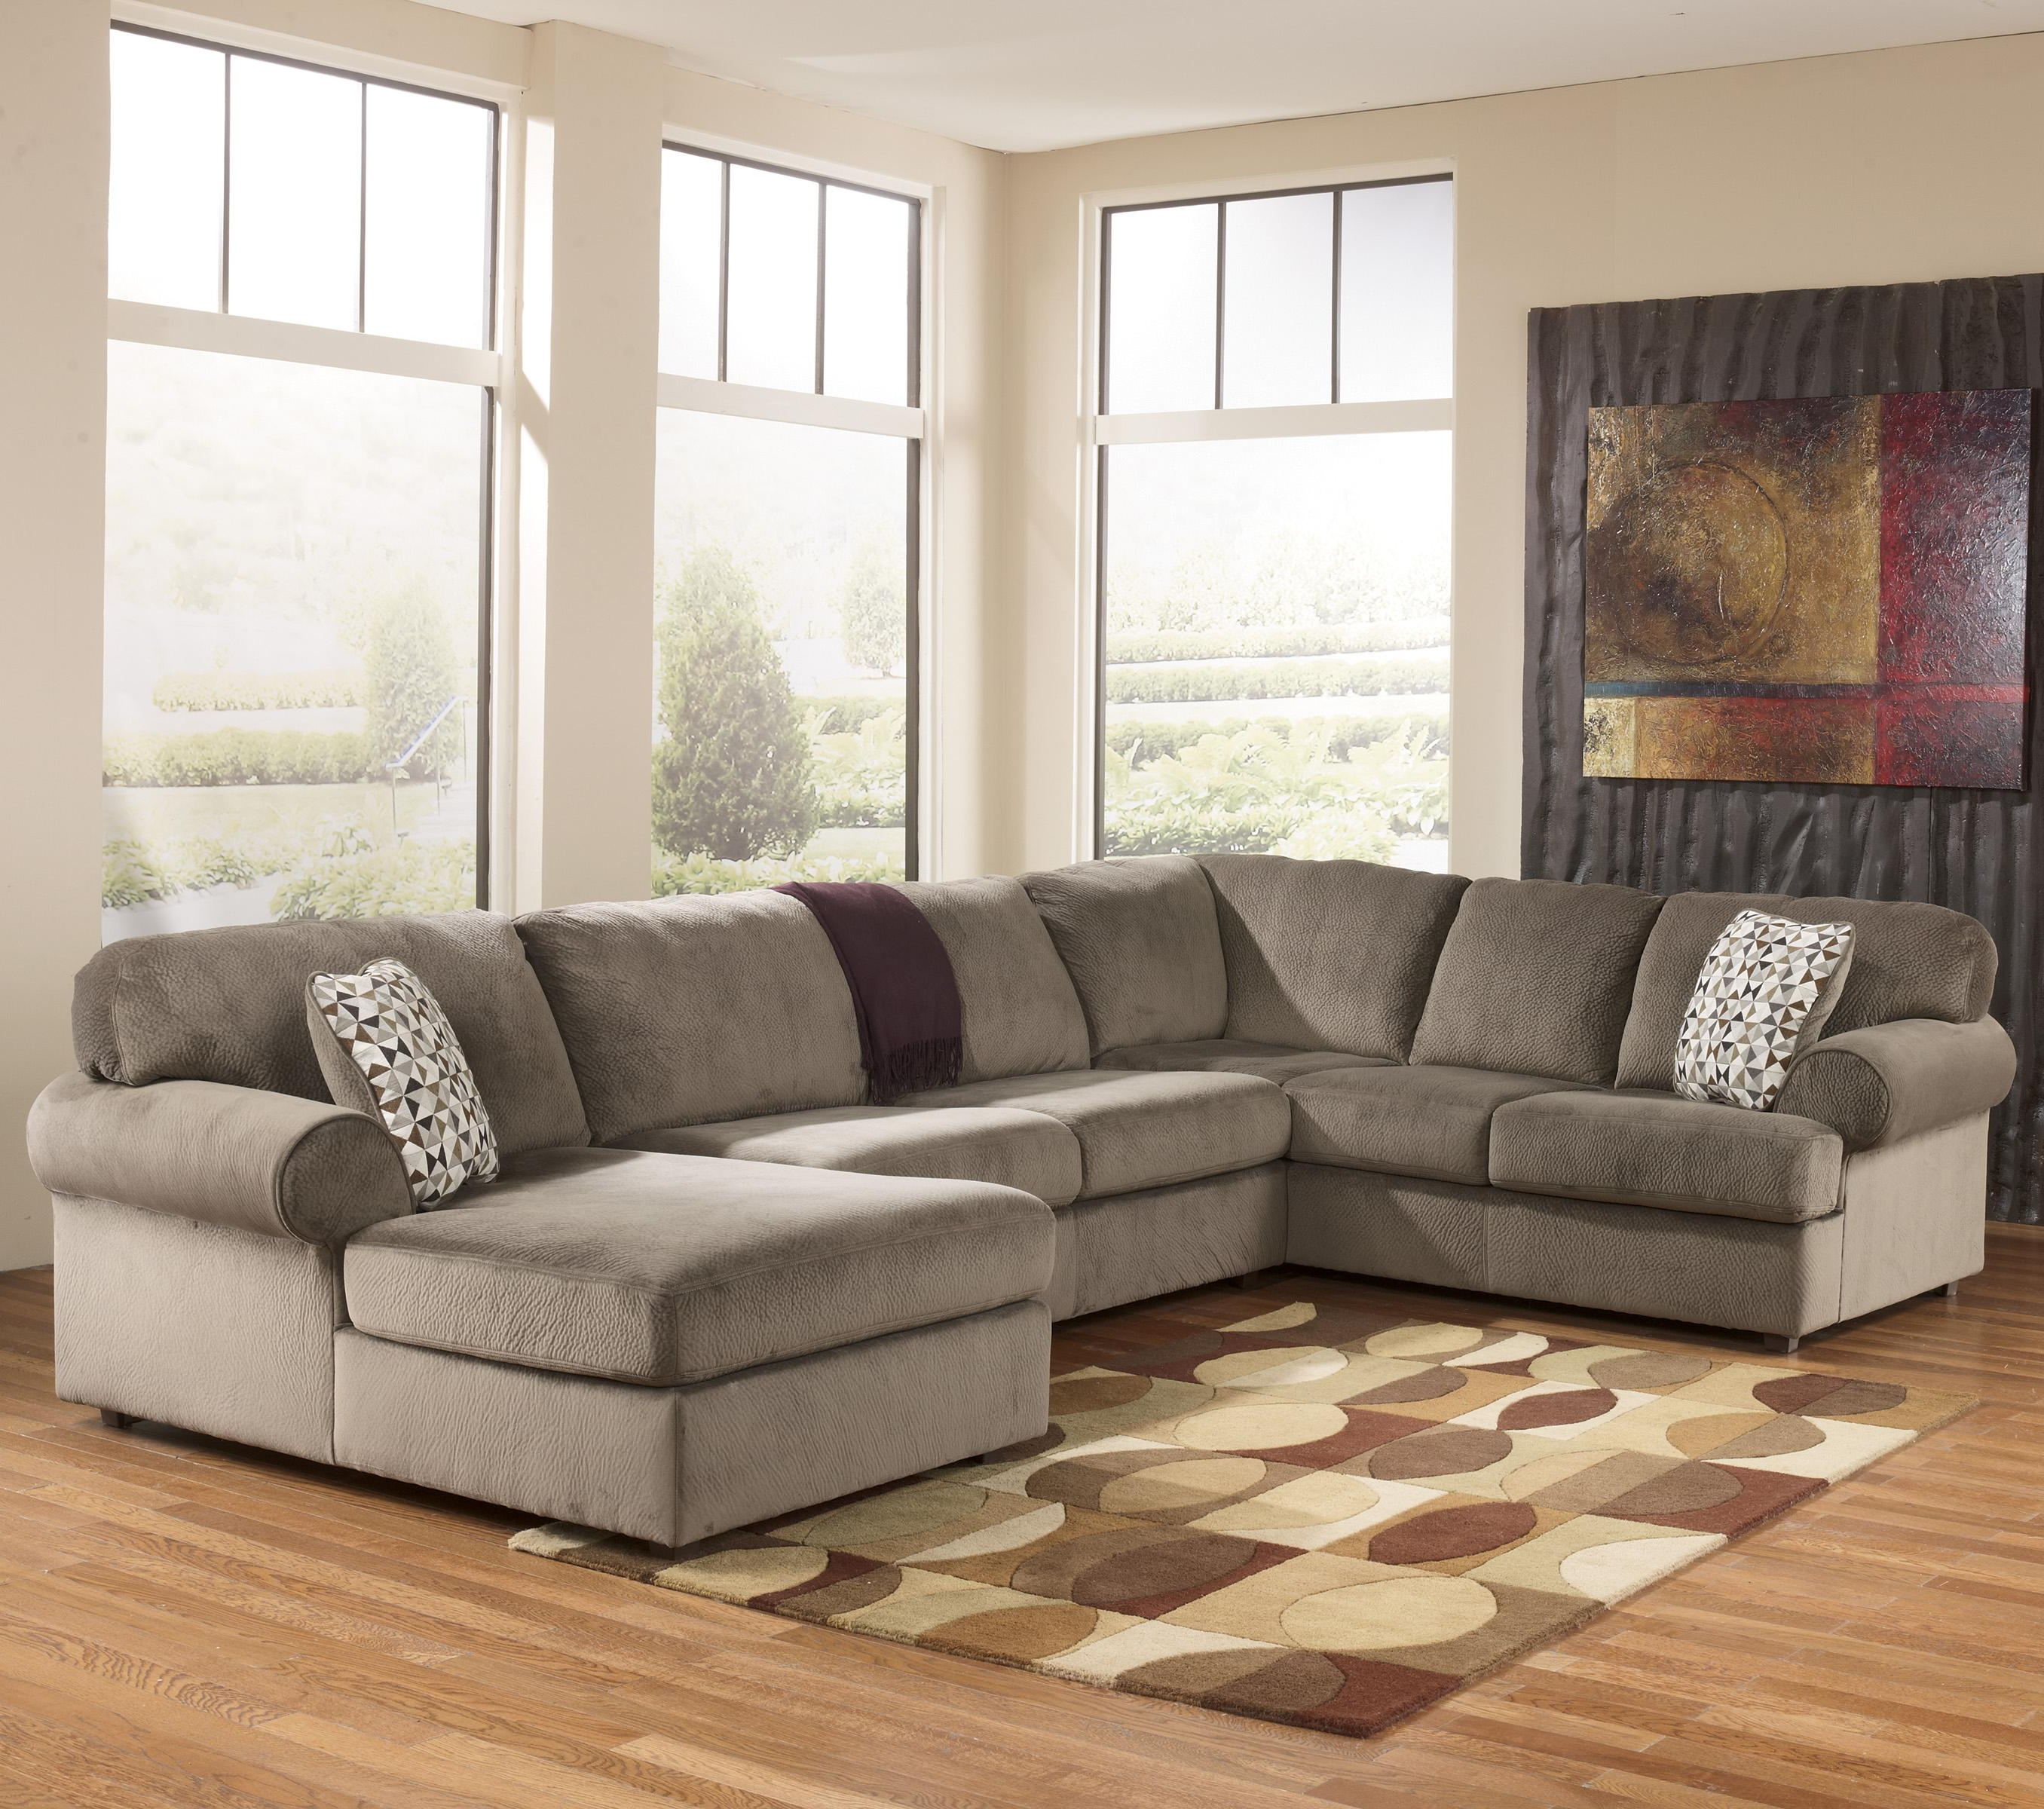 Lucy Grey 2 Piece Sectionals With Laf Chaise Throughout Best And Newest Laf Chaise Sectional Sofa (View 18 of 20)